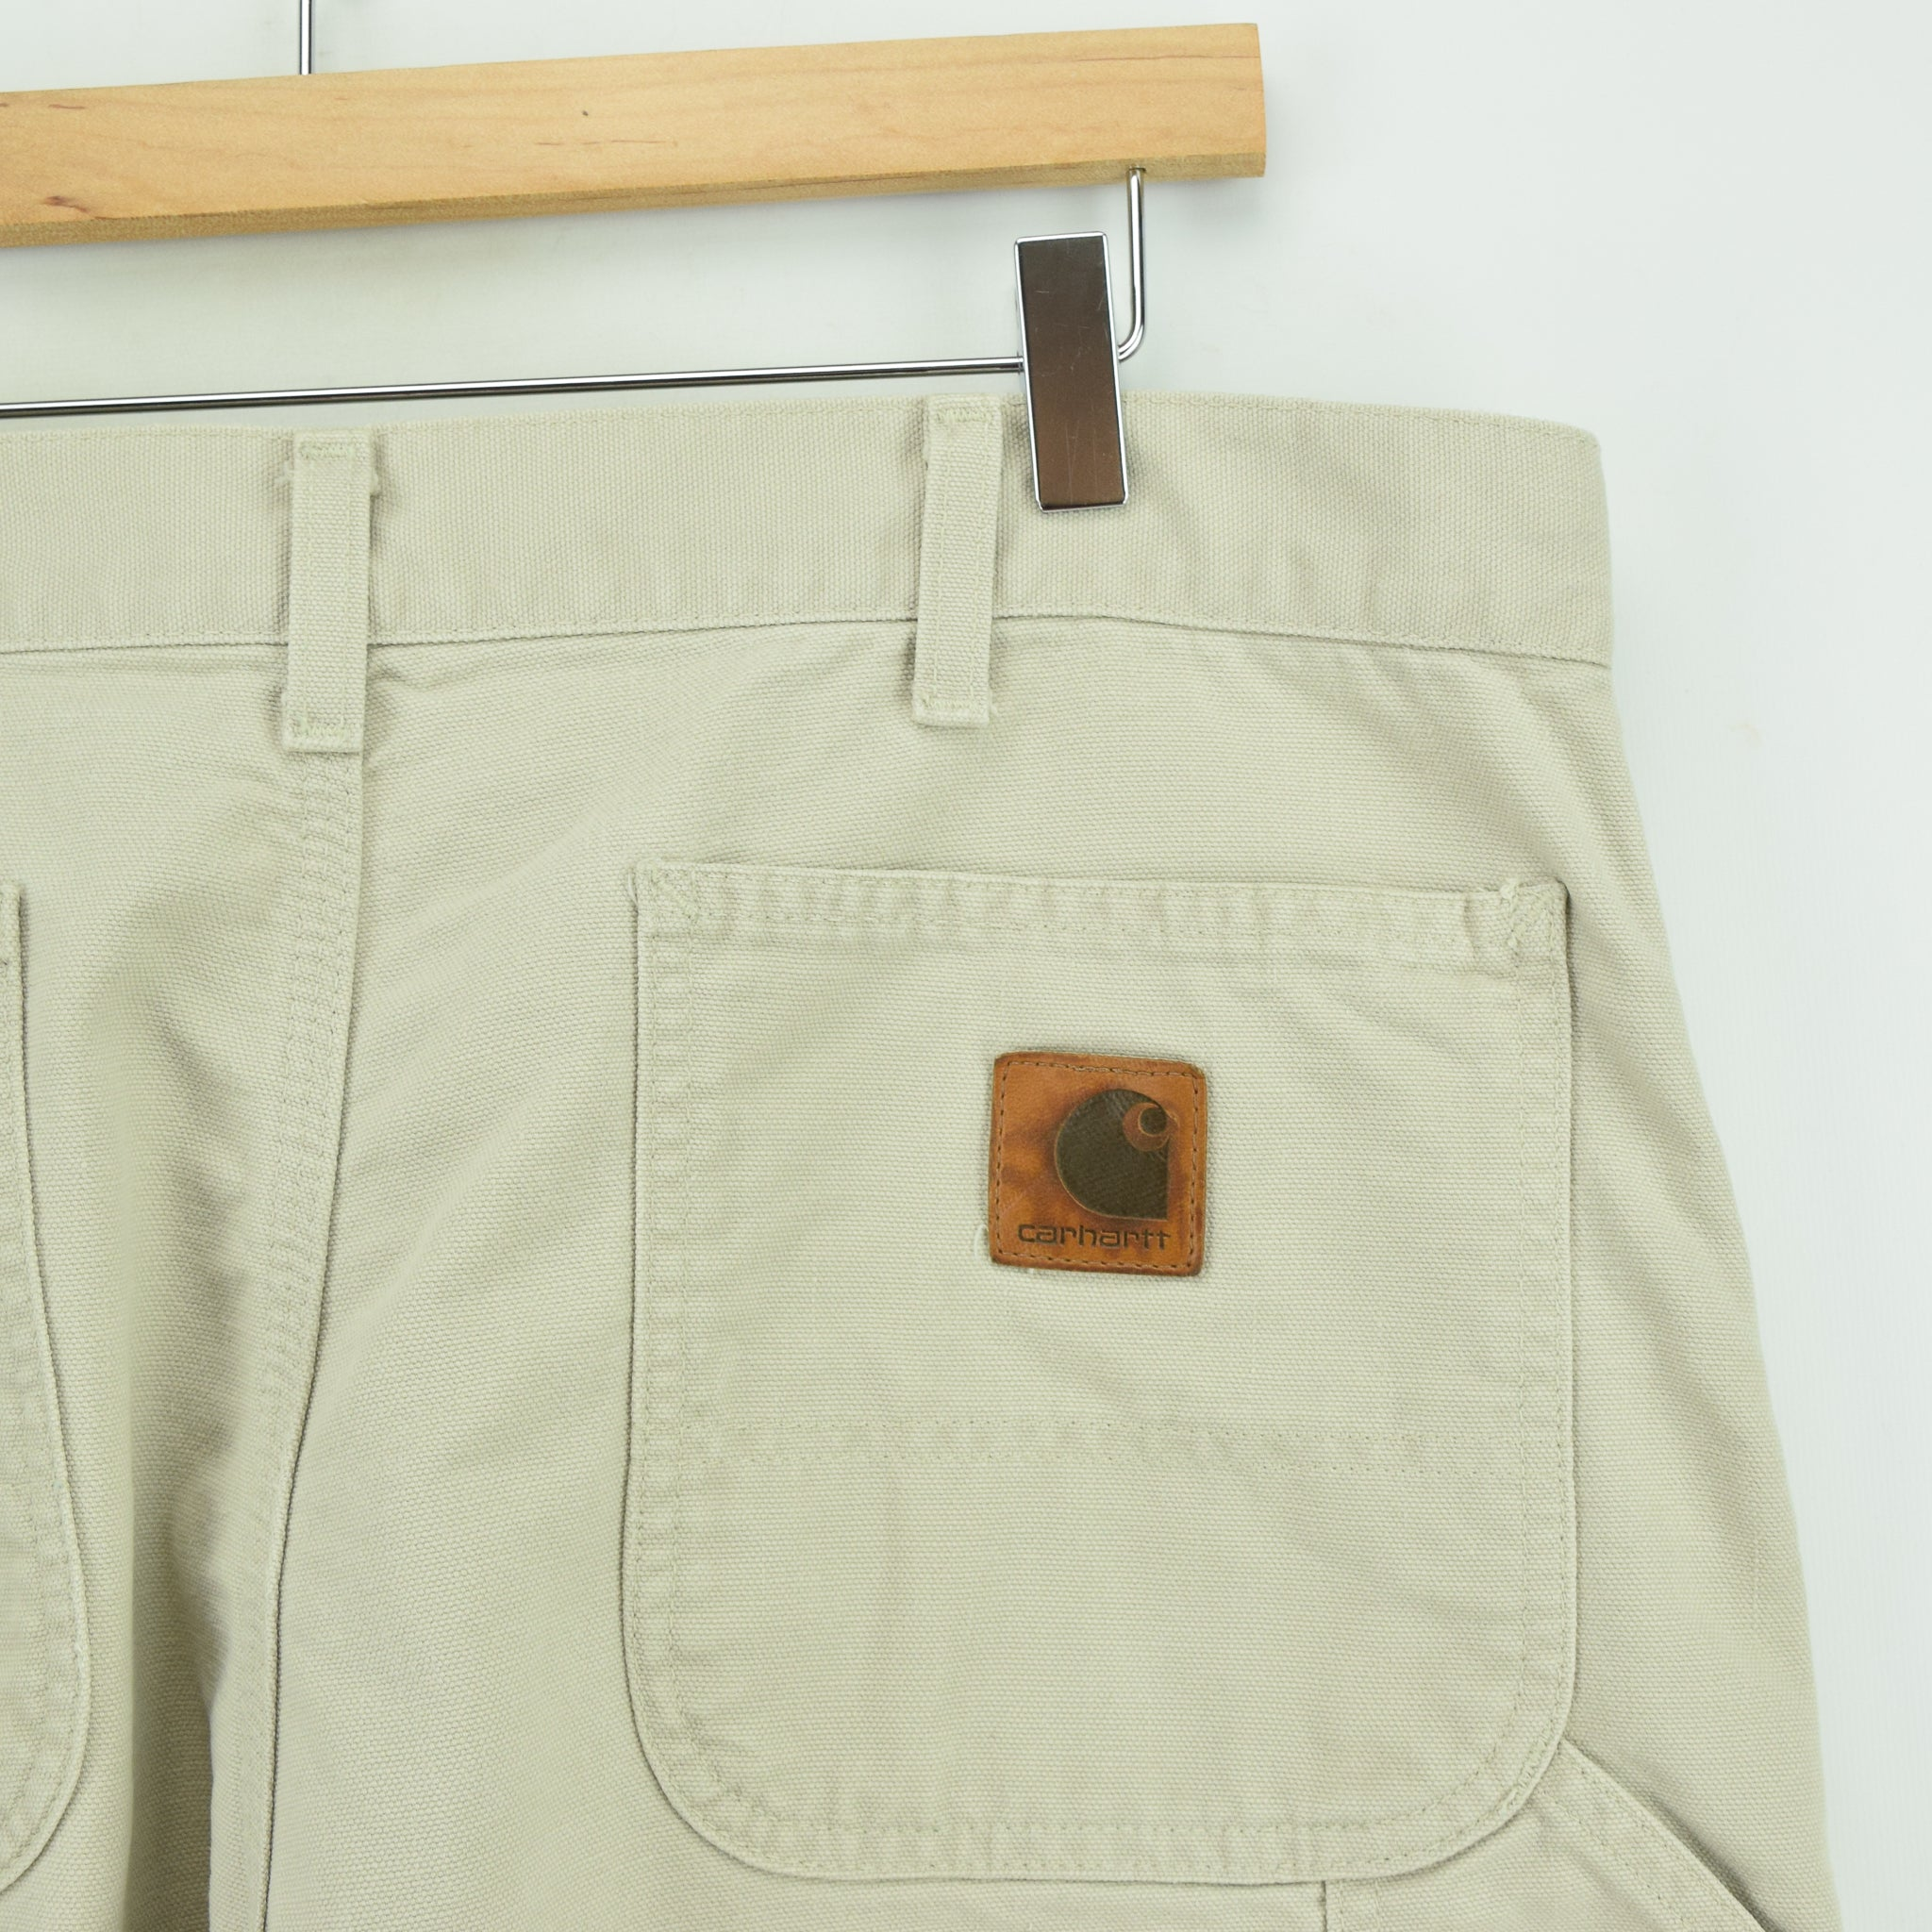 Vintage Carhartt Stone Carpenter Duck Canvas Utility Work Pant 34 W 32 L back pocket